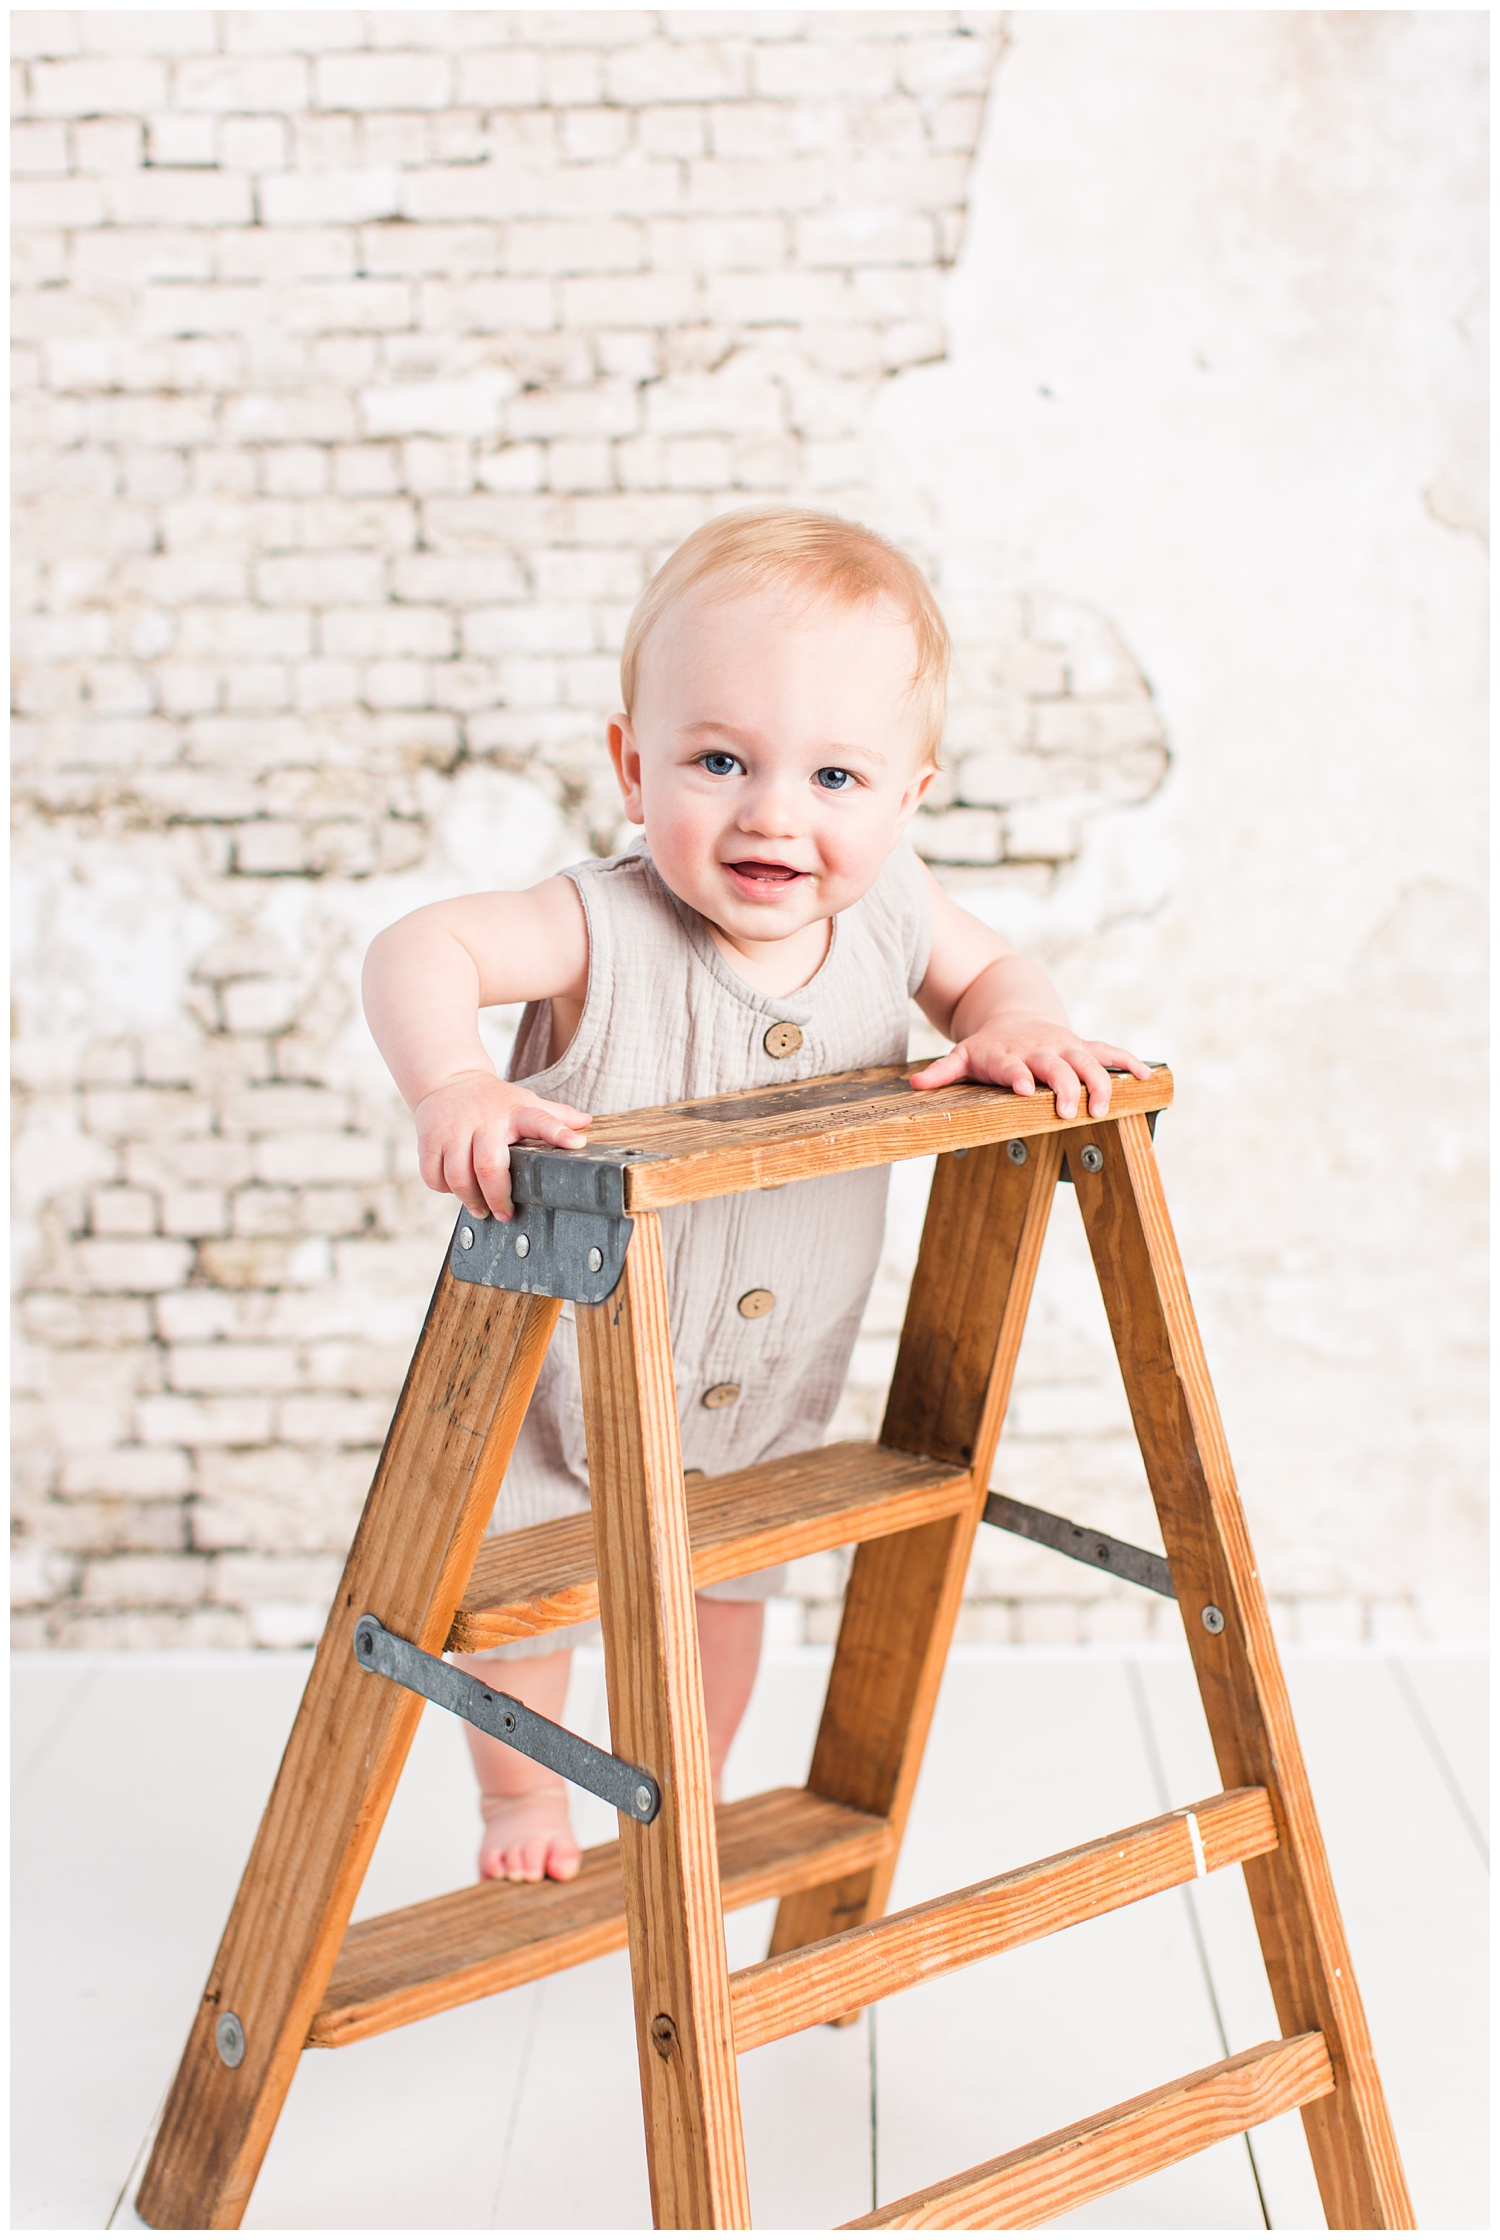 Baby Cullen poses on a wooden ladder in a gray vintage romper for his first birthday.